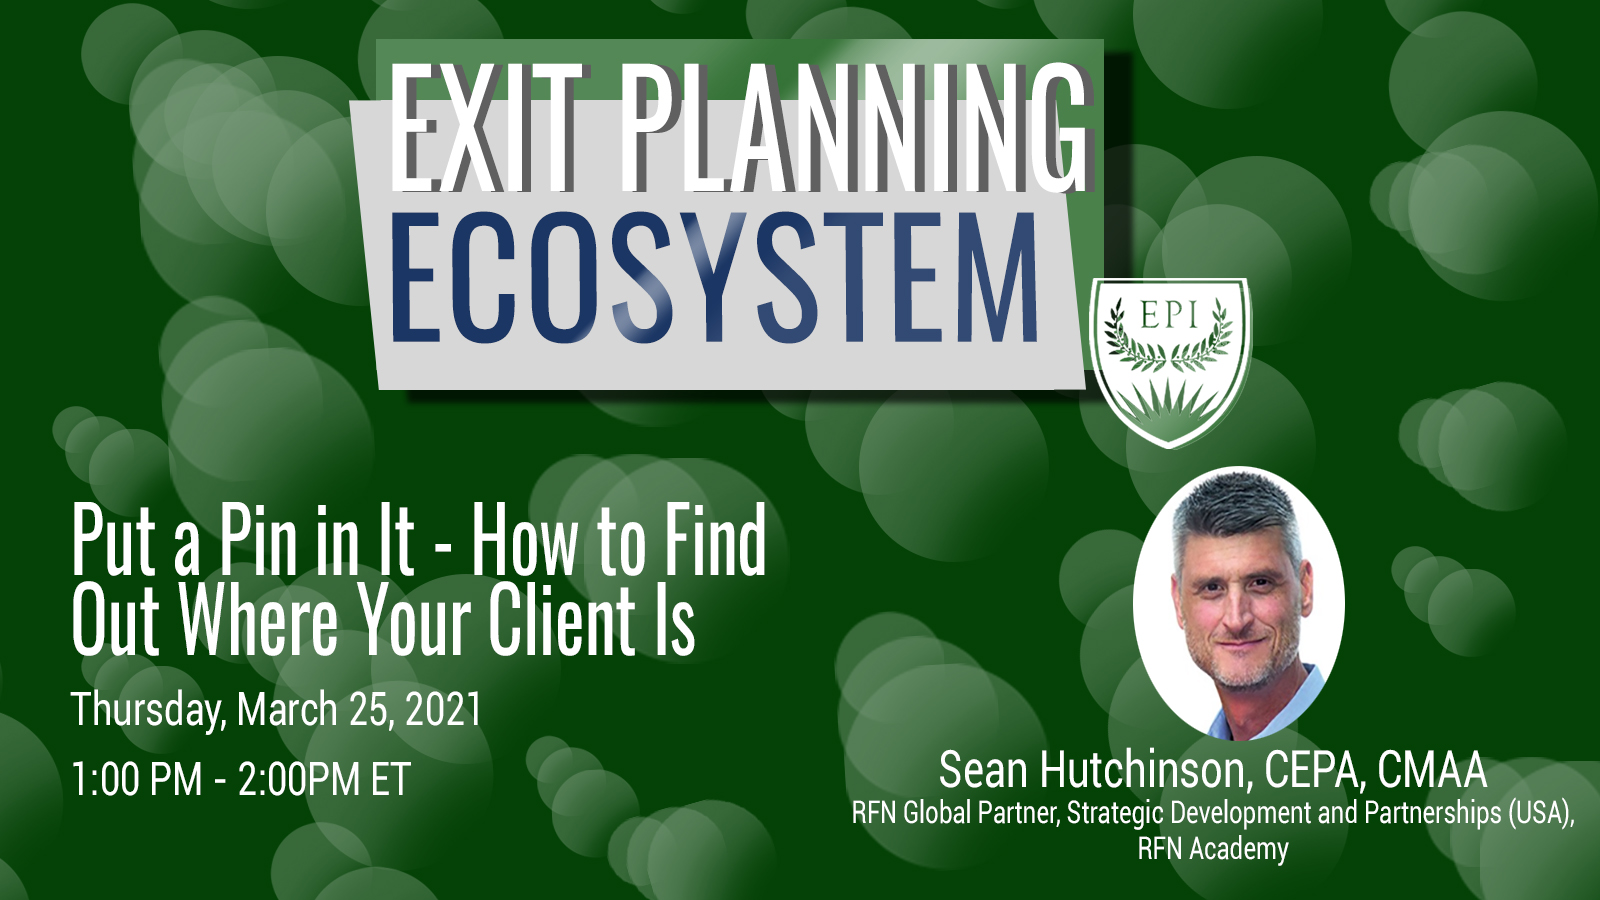 Put a Pin in It - How to Find Out Where Your Client Is